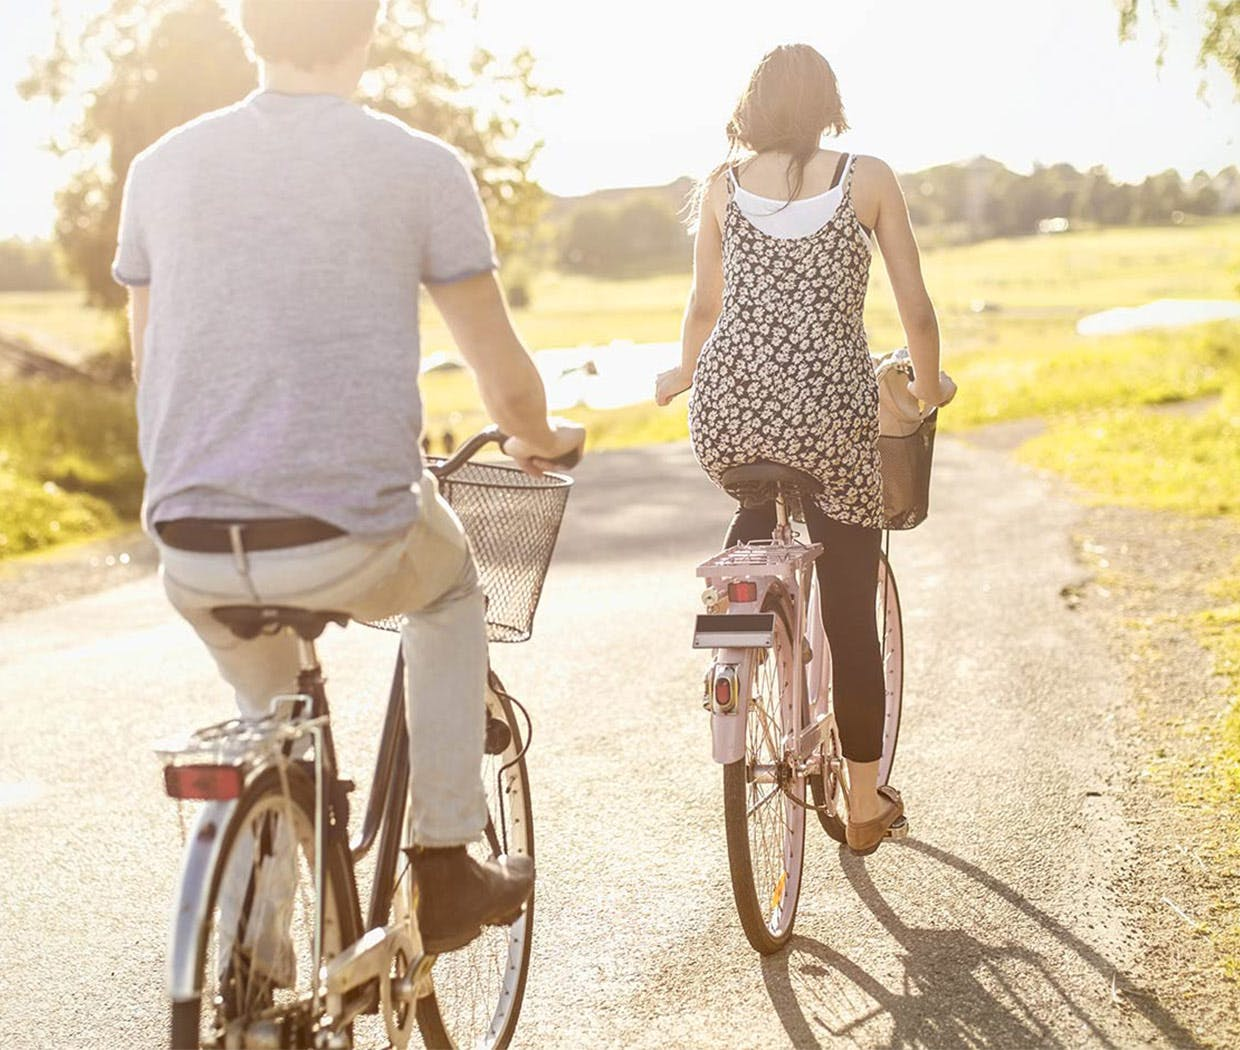 Couple riding bicycles in the countryside in summertime